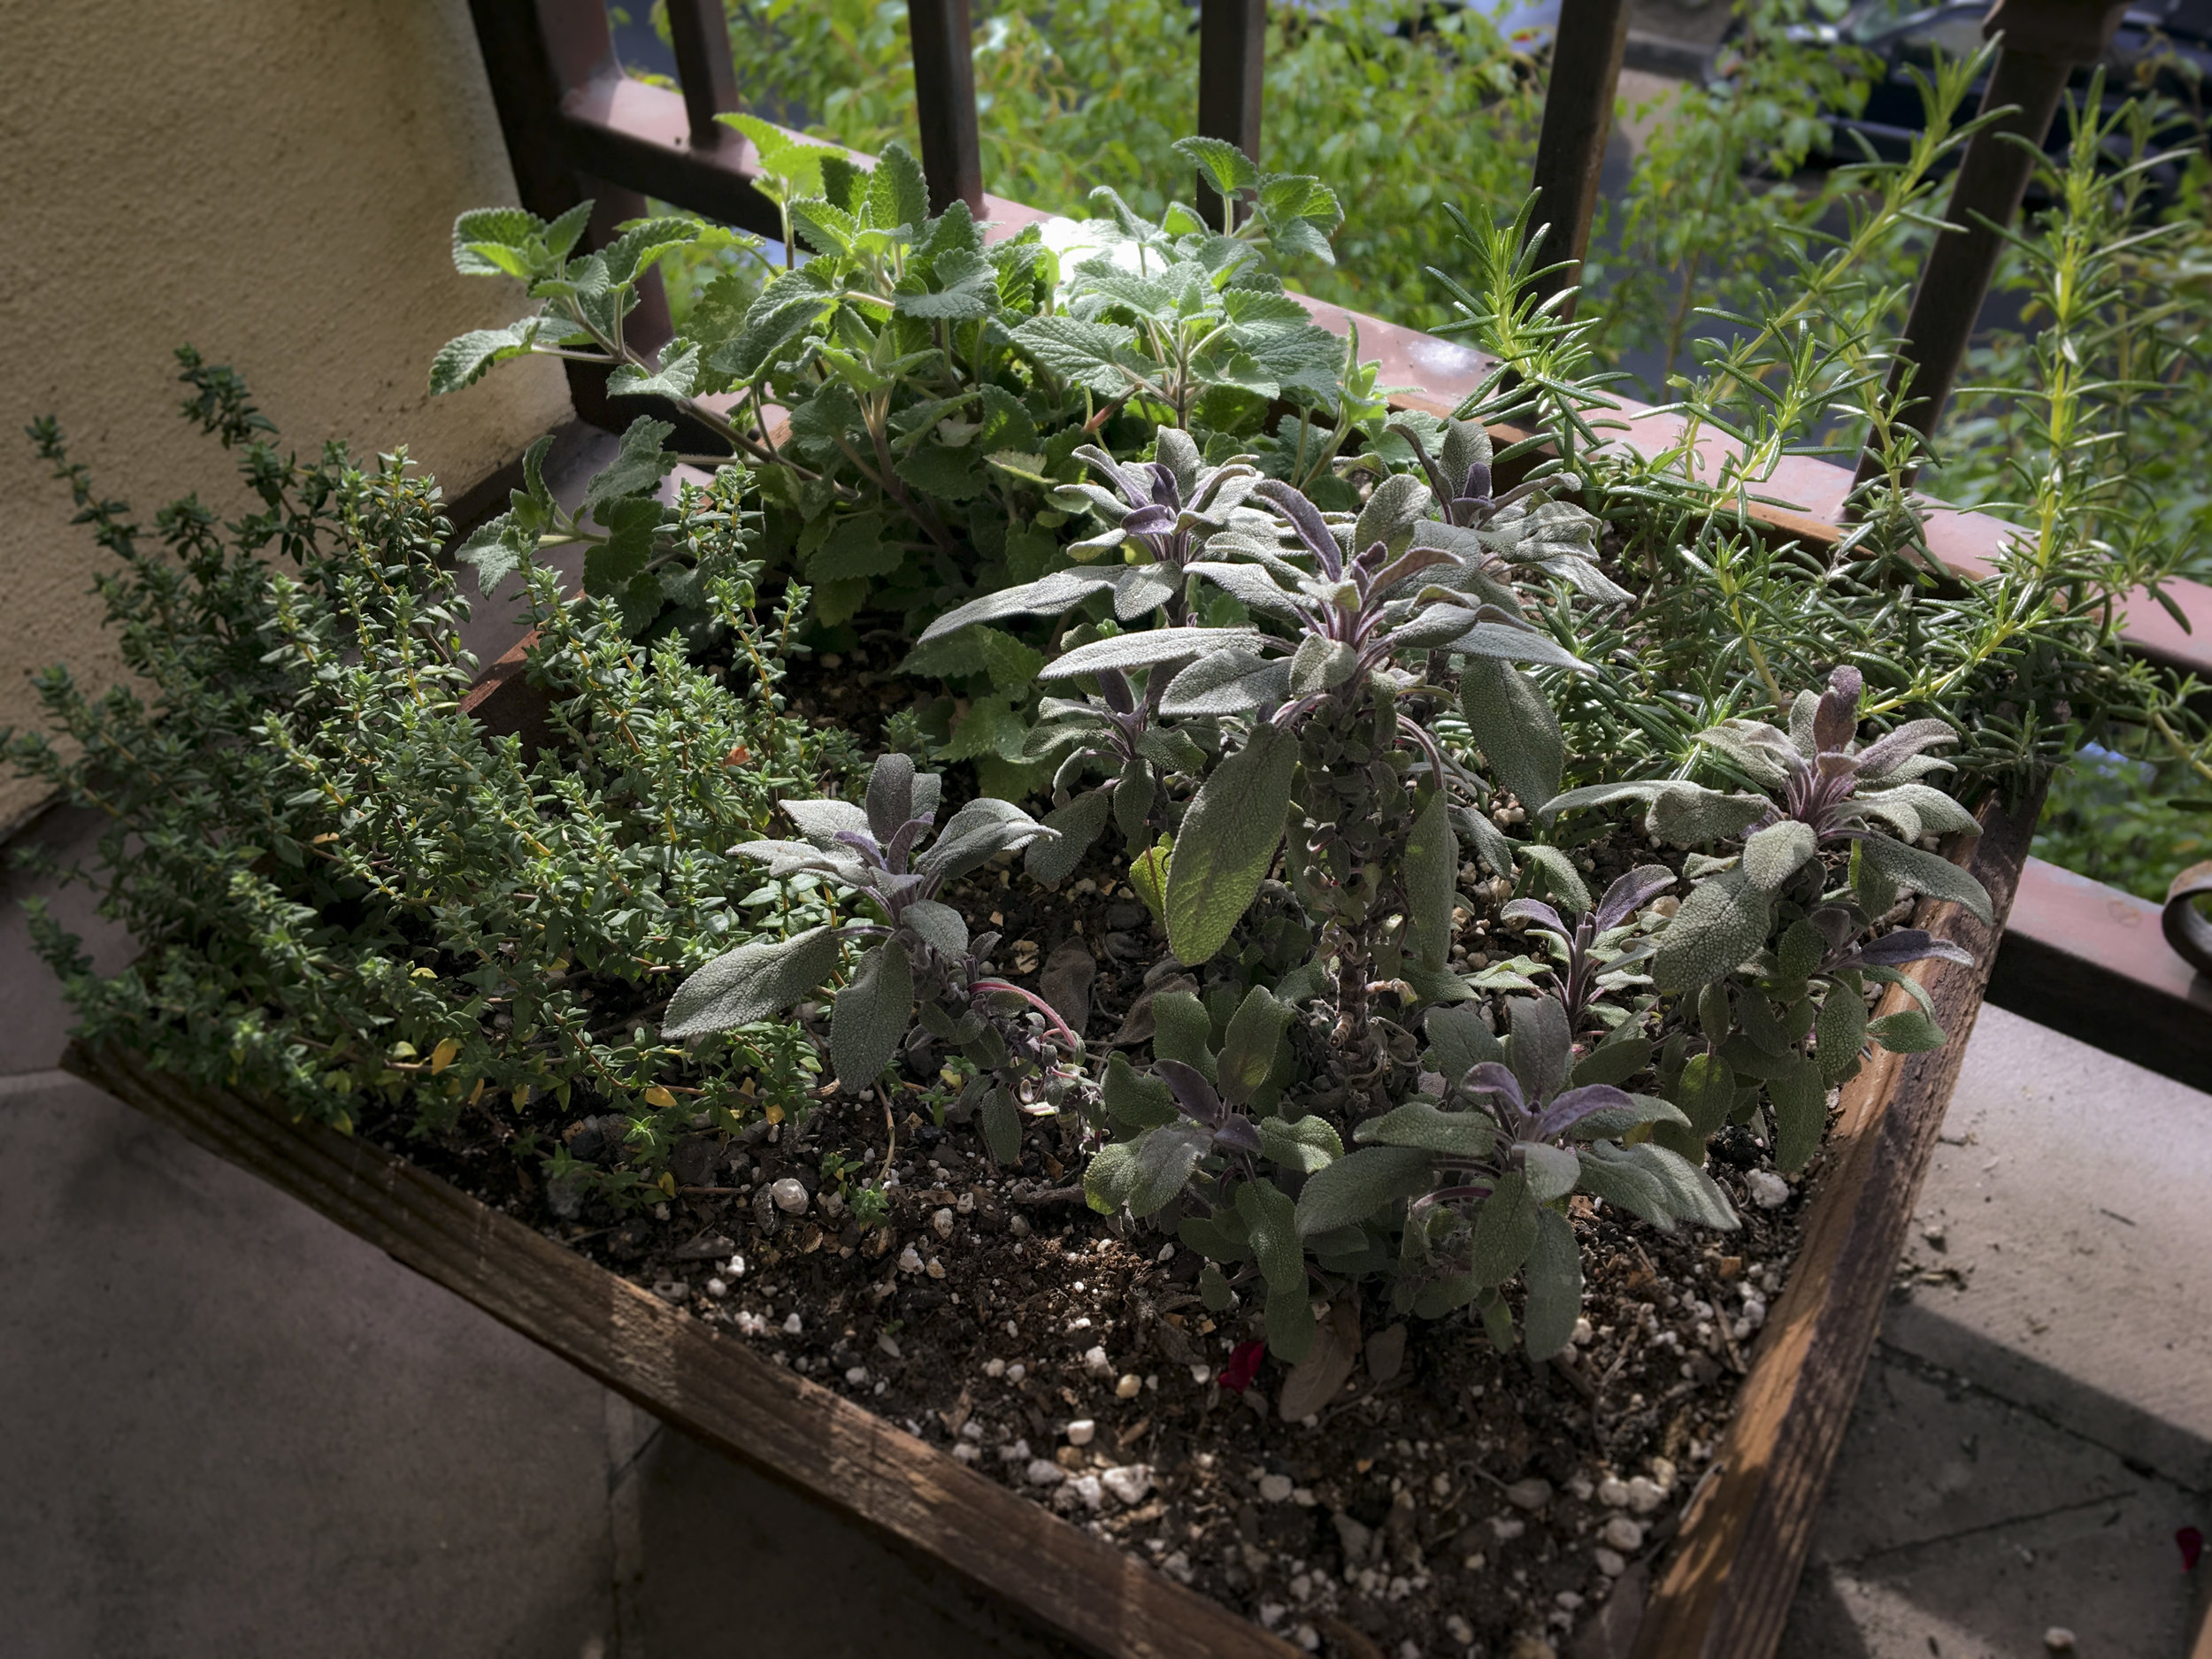 Wood is another good material for a patio or balcony herb planter box. Clockwise from the left, this planter has thyme, catnip, rosemary, and sage.